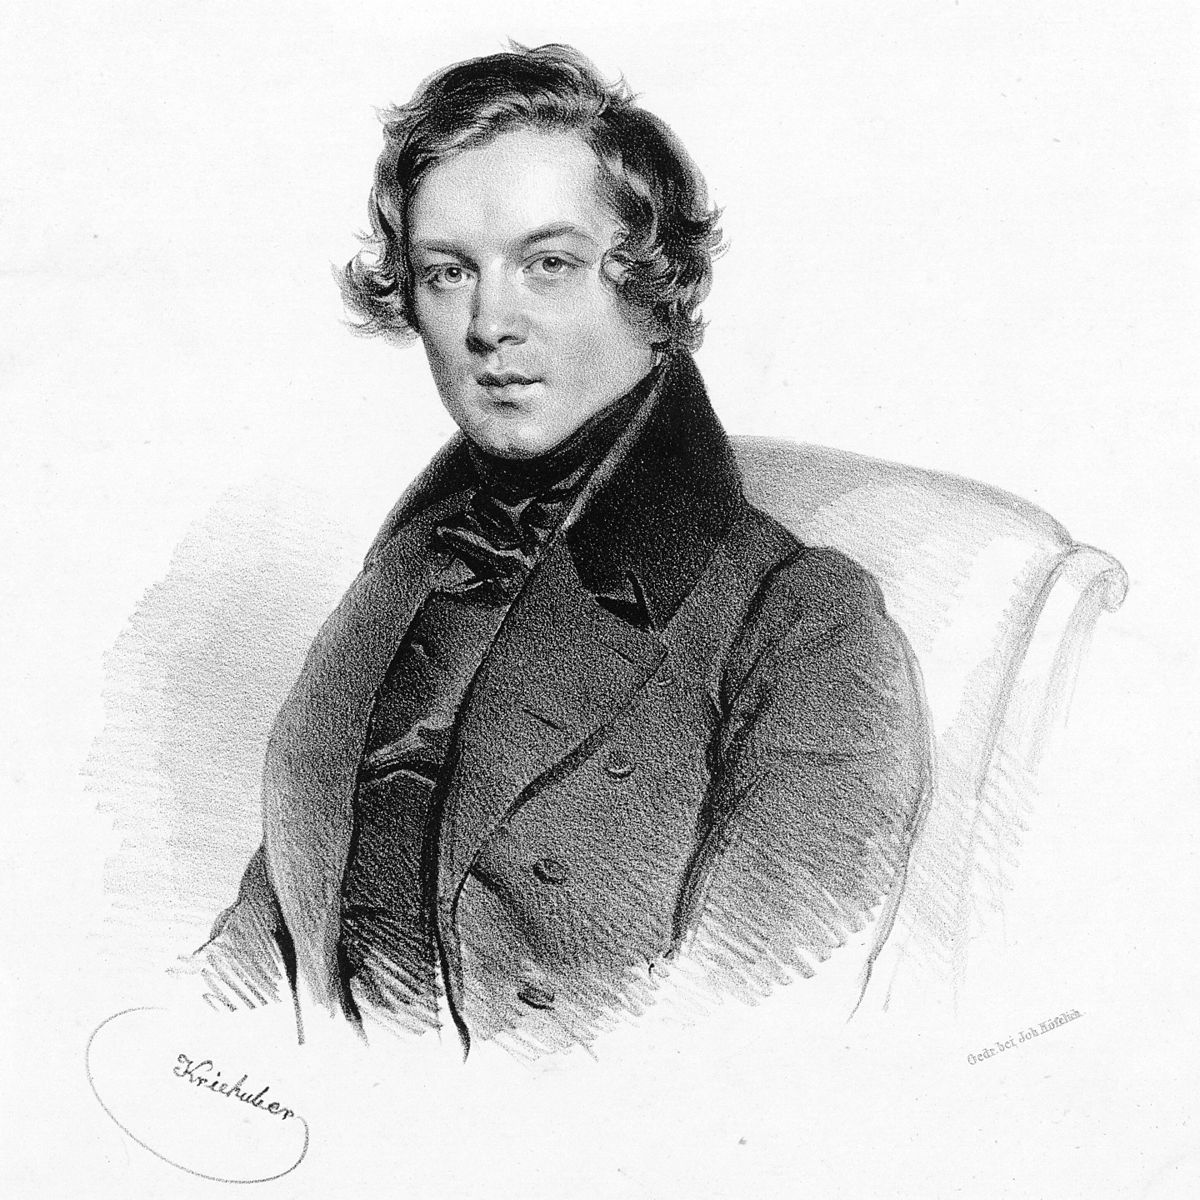 robert schumann wikipedia